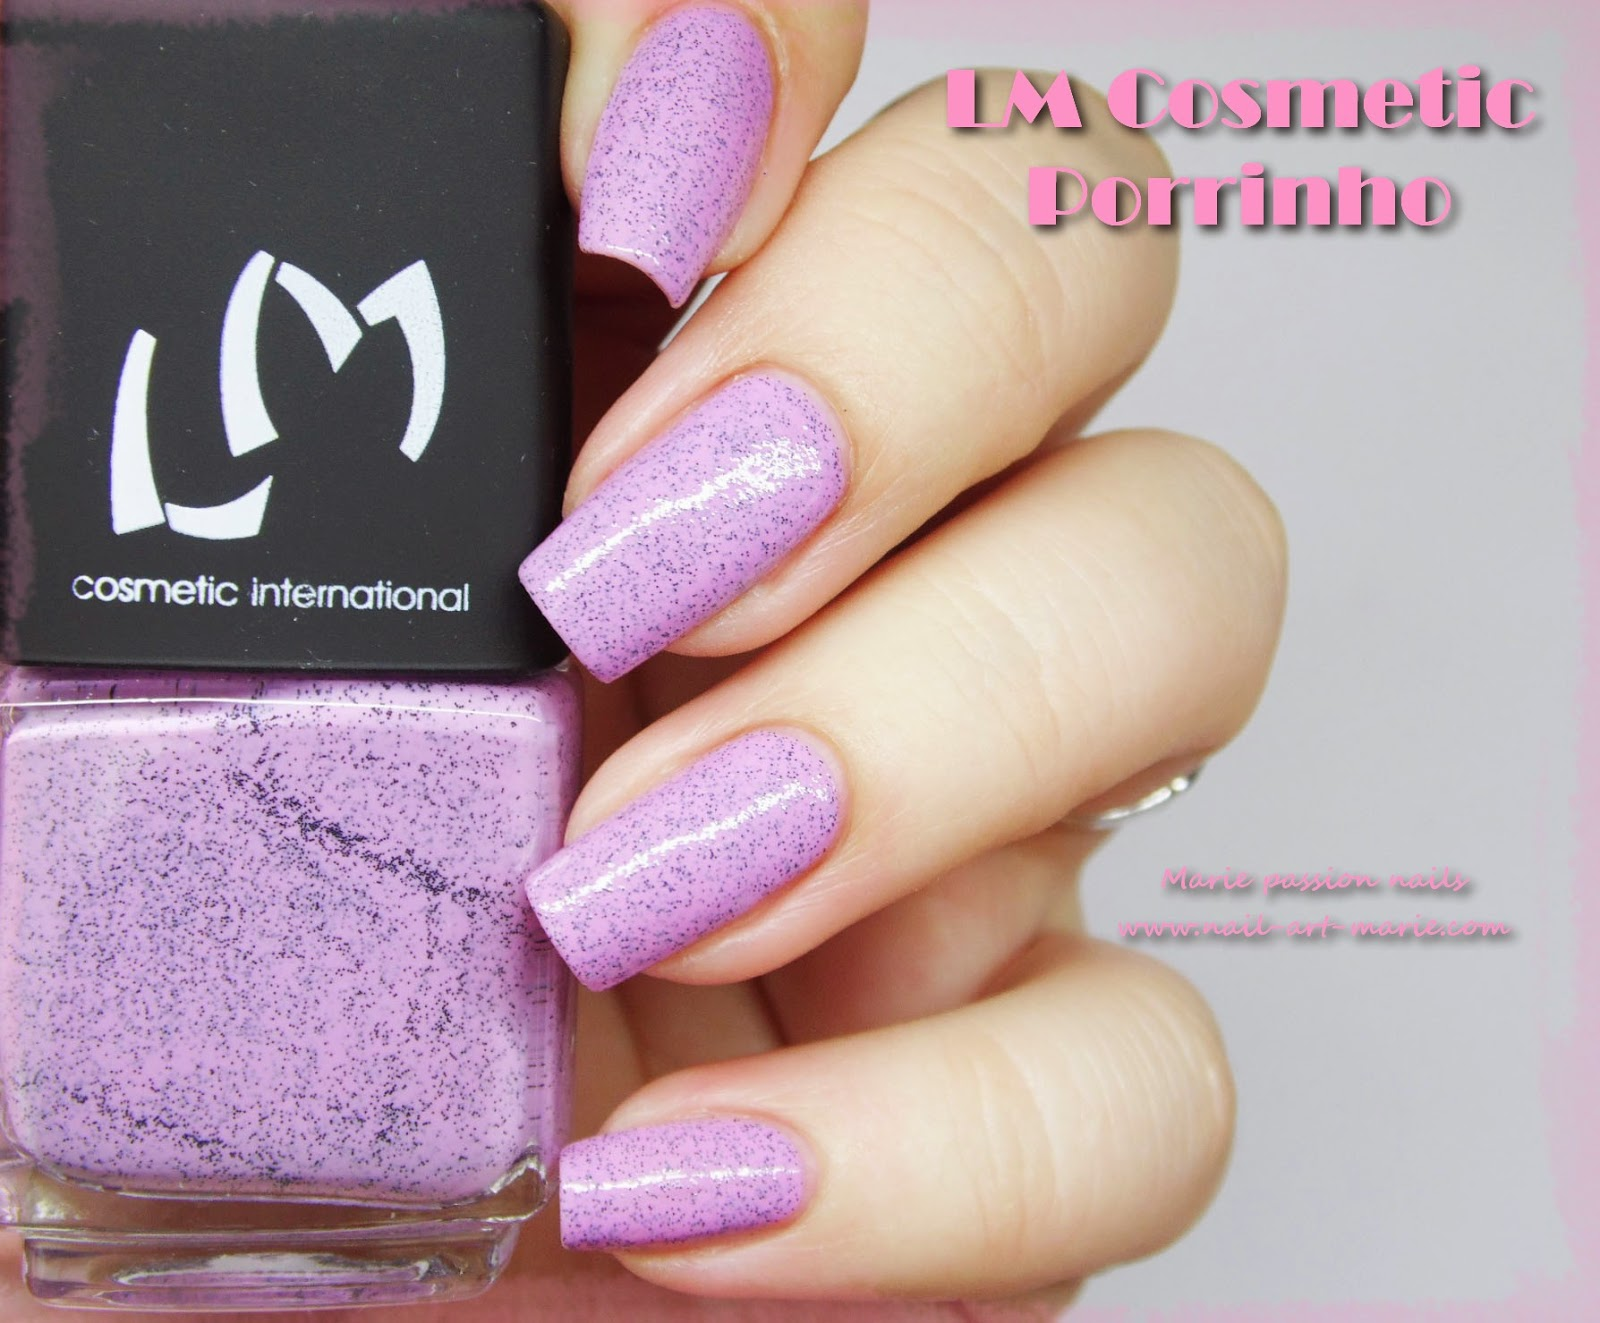 LM Cosmetic Porrinho1